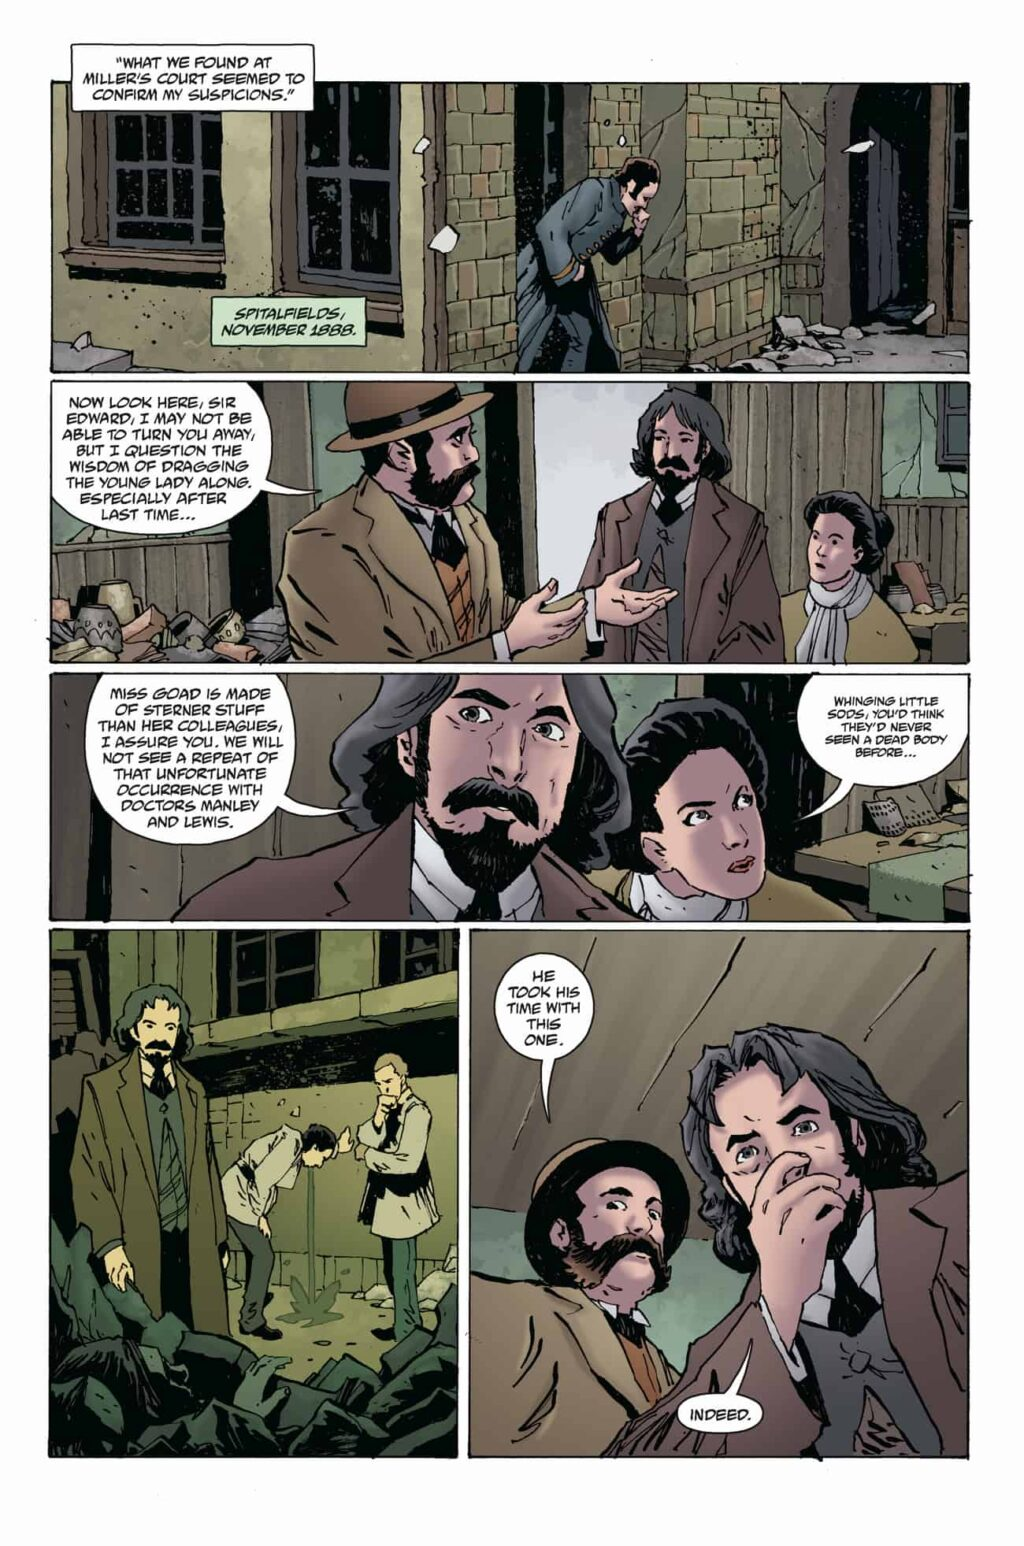 WFROD i1 PG 02 1024x1546 - Exclusive Preview: Jack the Ripper Haunts the Pages of WITCHFINDER: REIGN OF DARKNESS